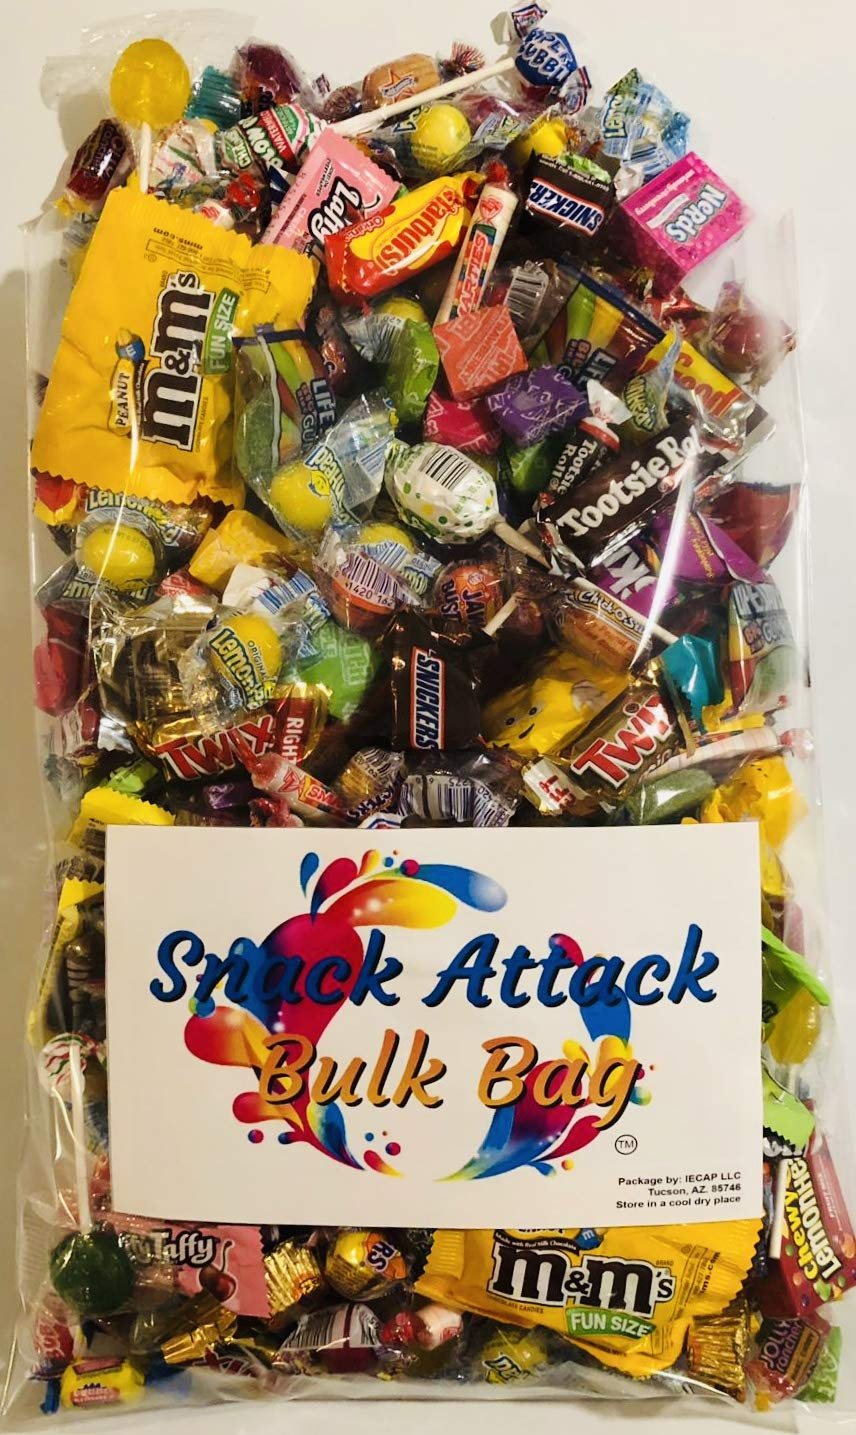 Assorted Candy Pinata Party Mix, 5 LB Bulk Bag: Skittles, Reeses, Life Savers, Nerds, Charms Blow Pop, Jaw Busters, Laffy Taffys, Twix, Snickers, Jolly Rancher, Tootsie Rolls, m&m's and Much More!